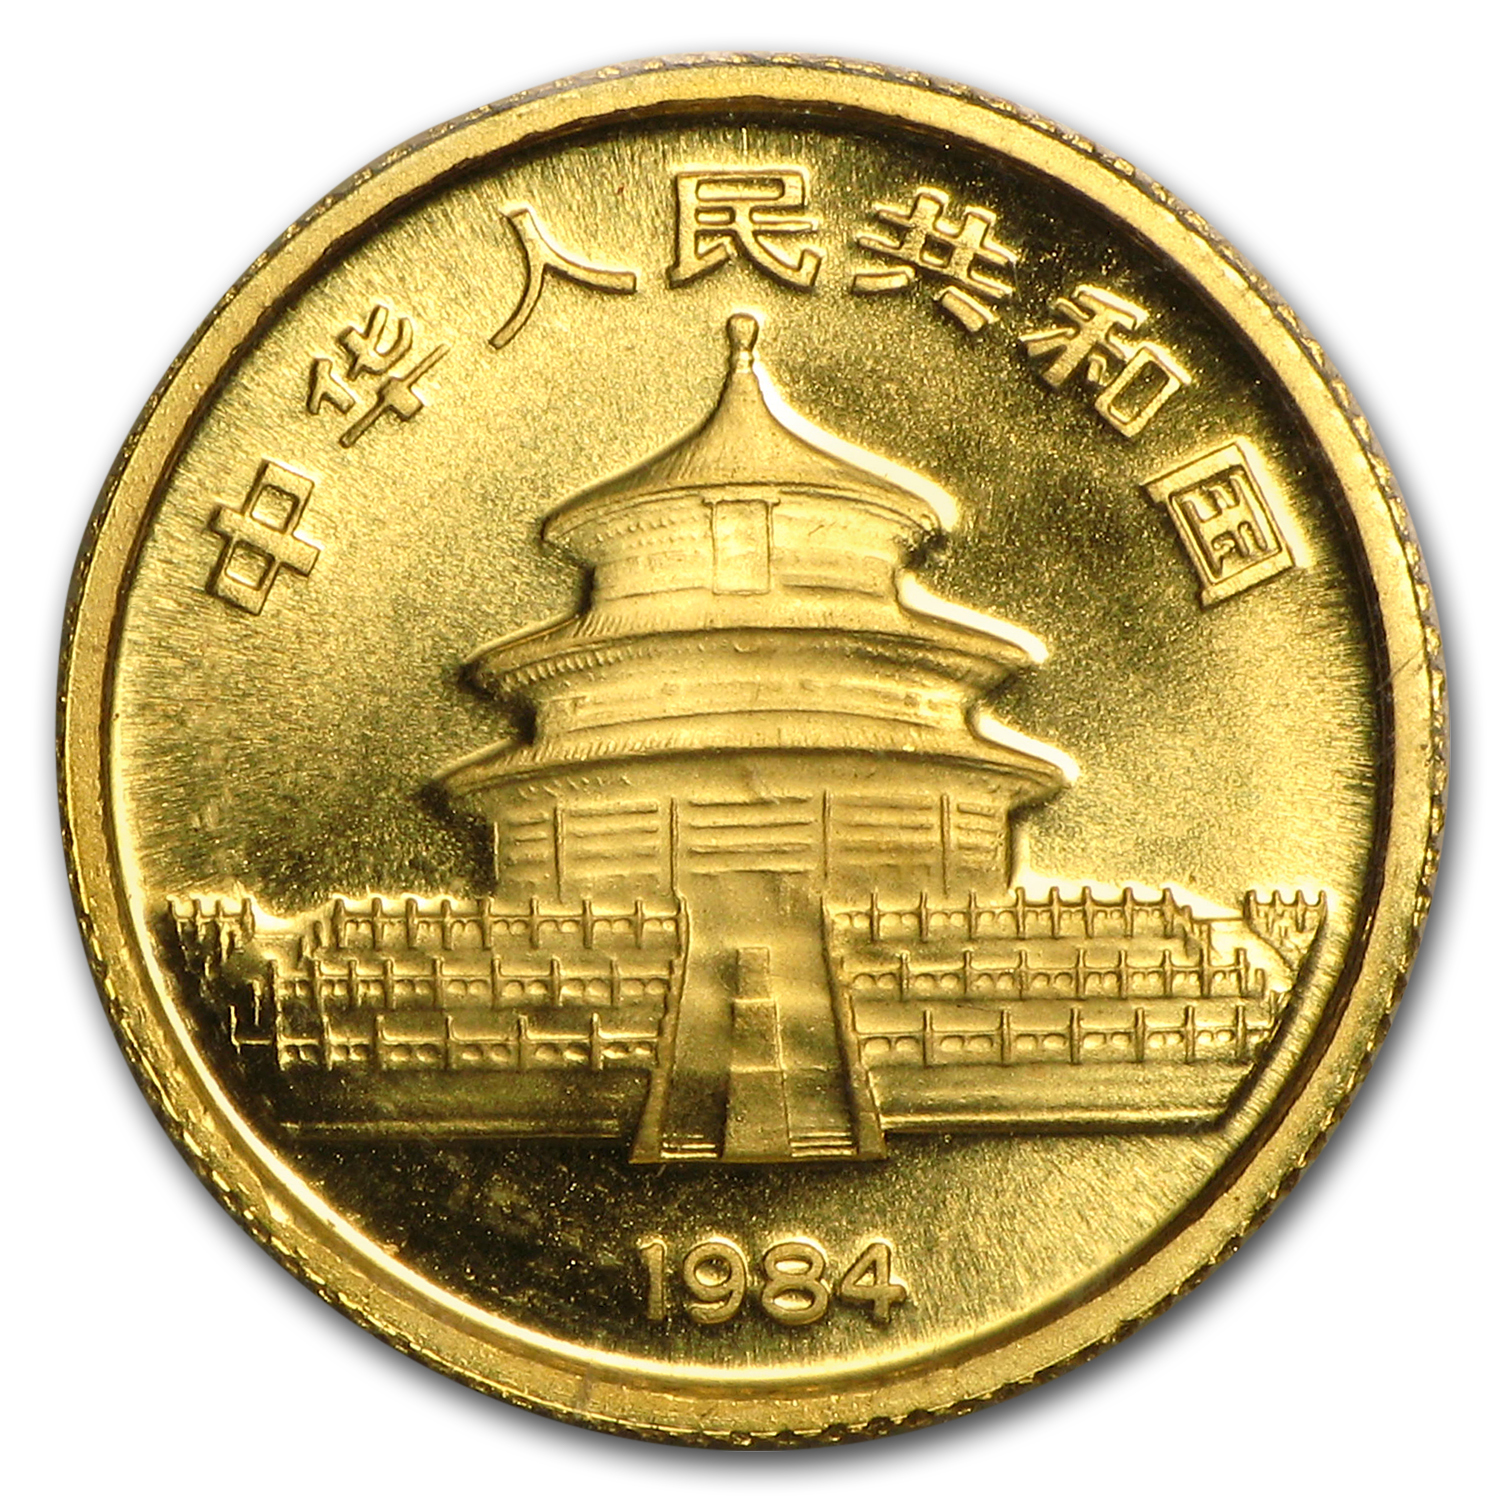 1984 China 1/20 oz Gold Panda BU (Sealed)